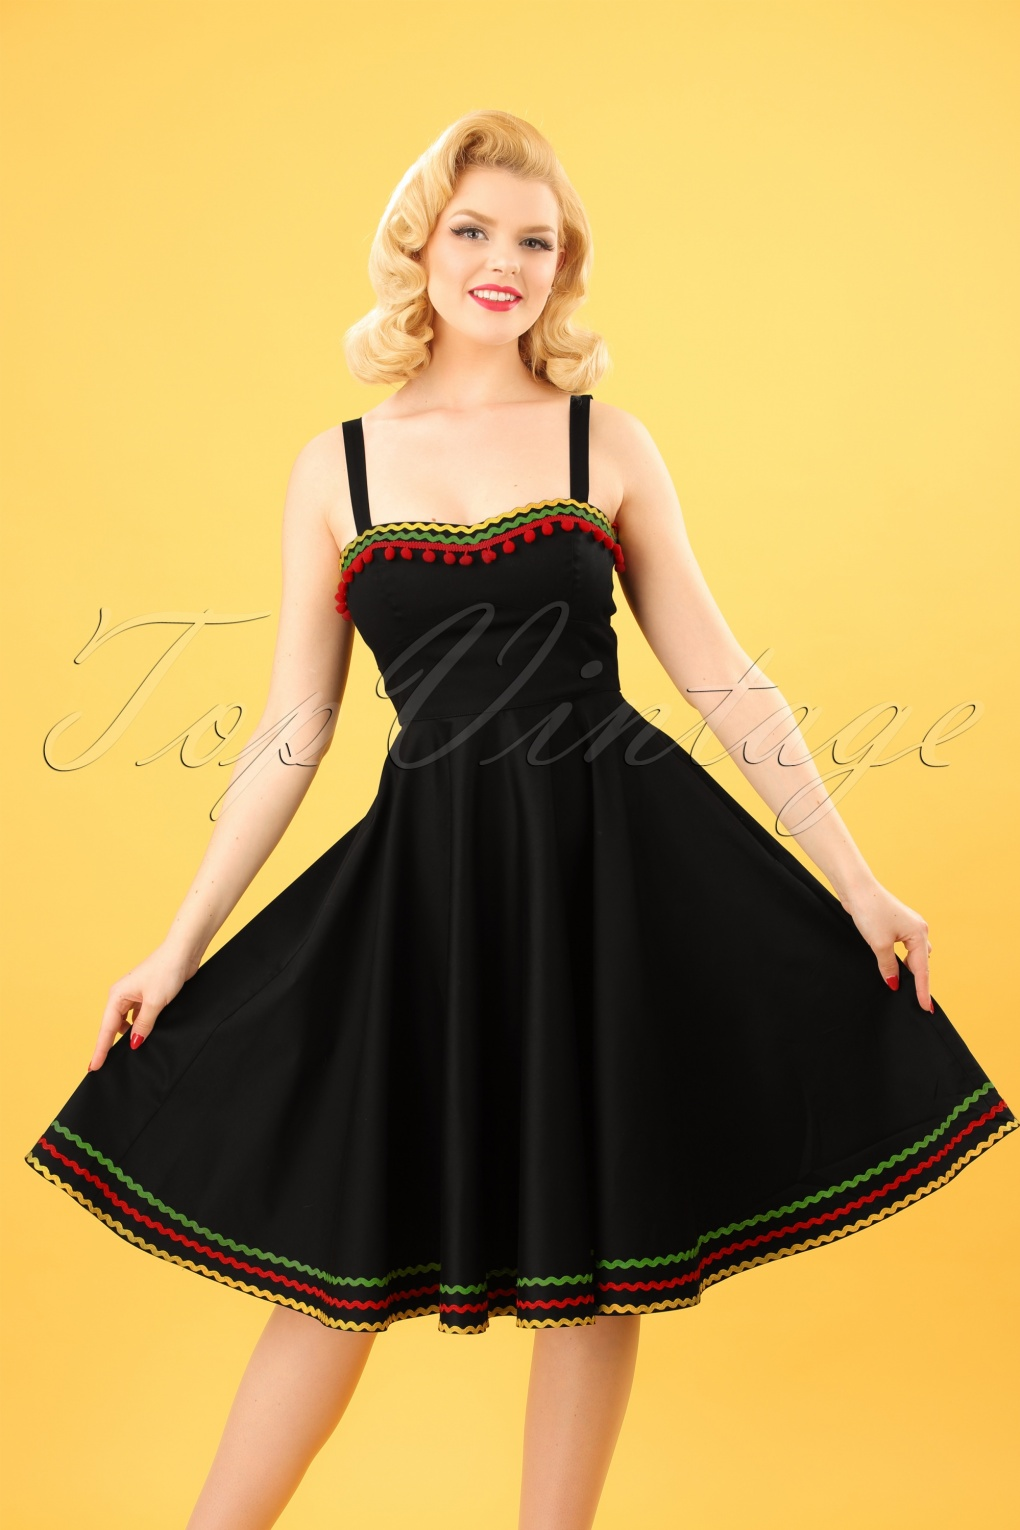 Vintage 50s Dresses: 8 Classic Retro Styles 50s Marianne Swing Dress in Black £56.90 AT vintagedancer.com